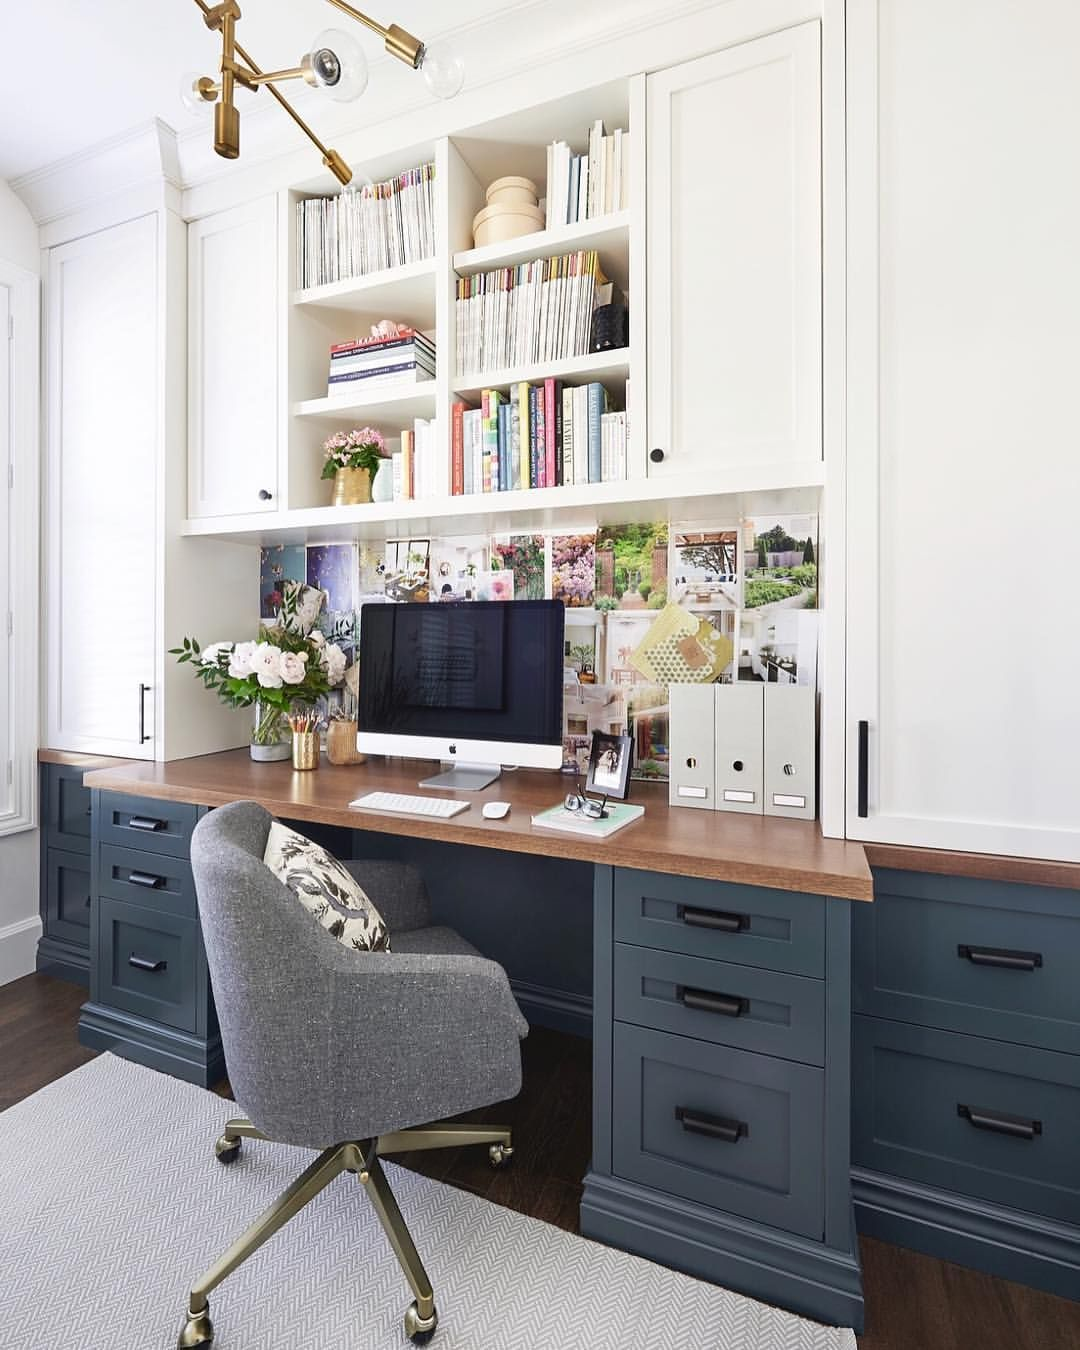 Home Office White Cabinetry Home Office Space Home Office